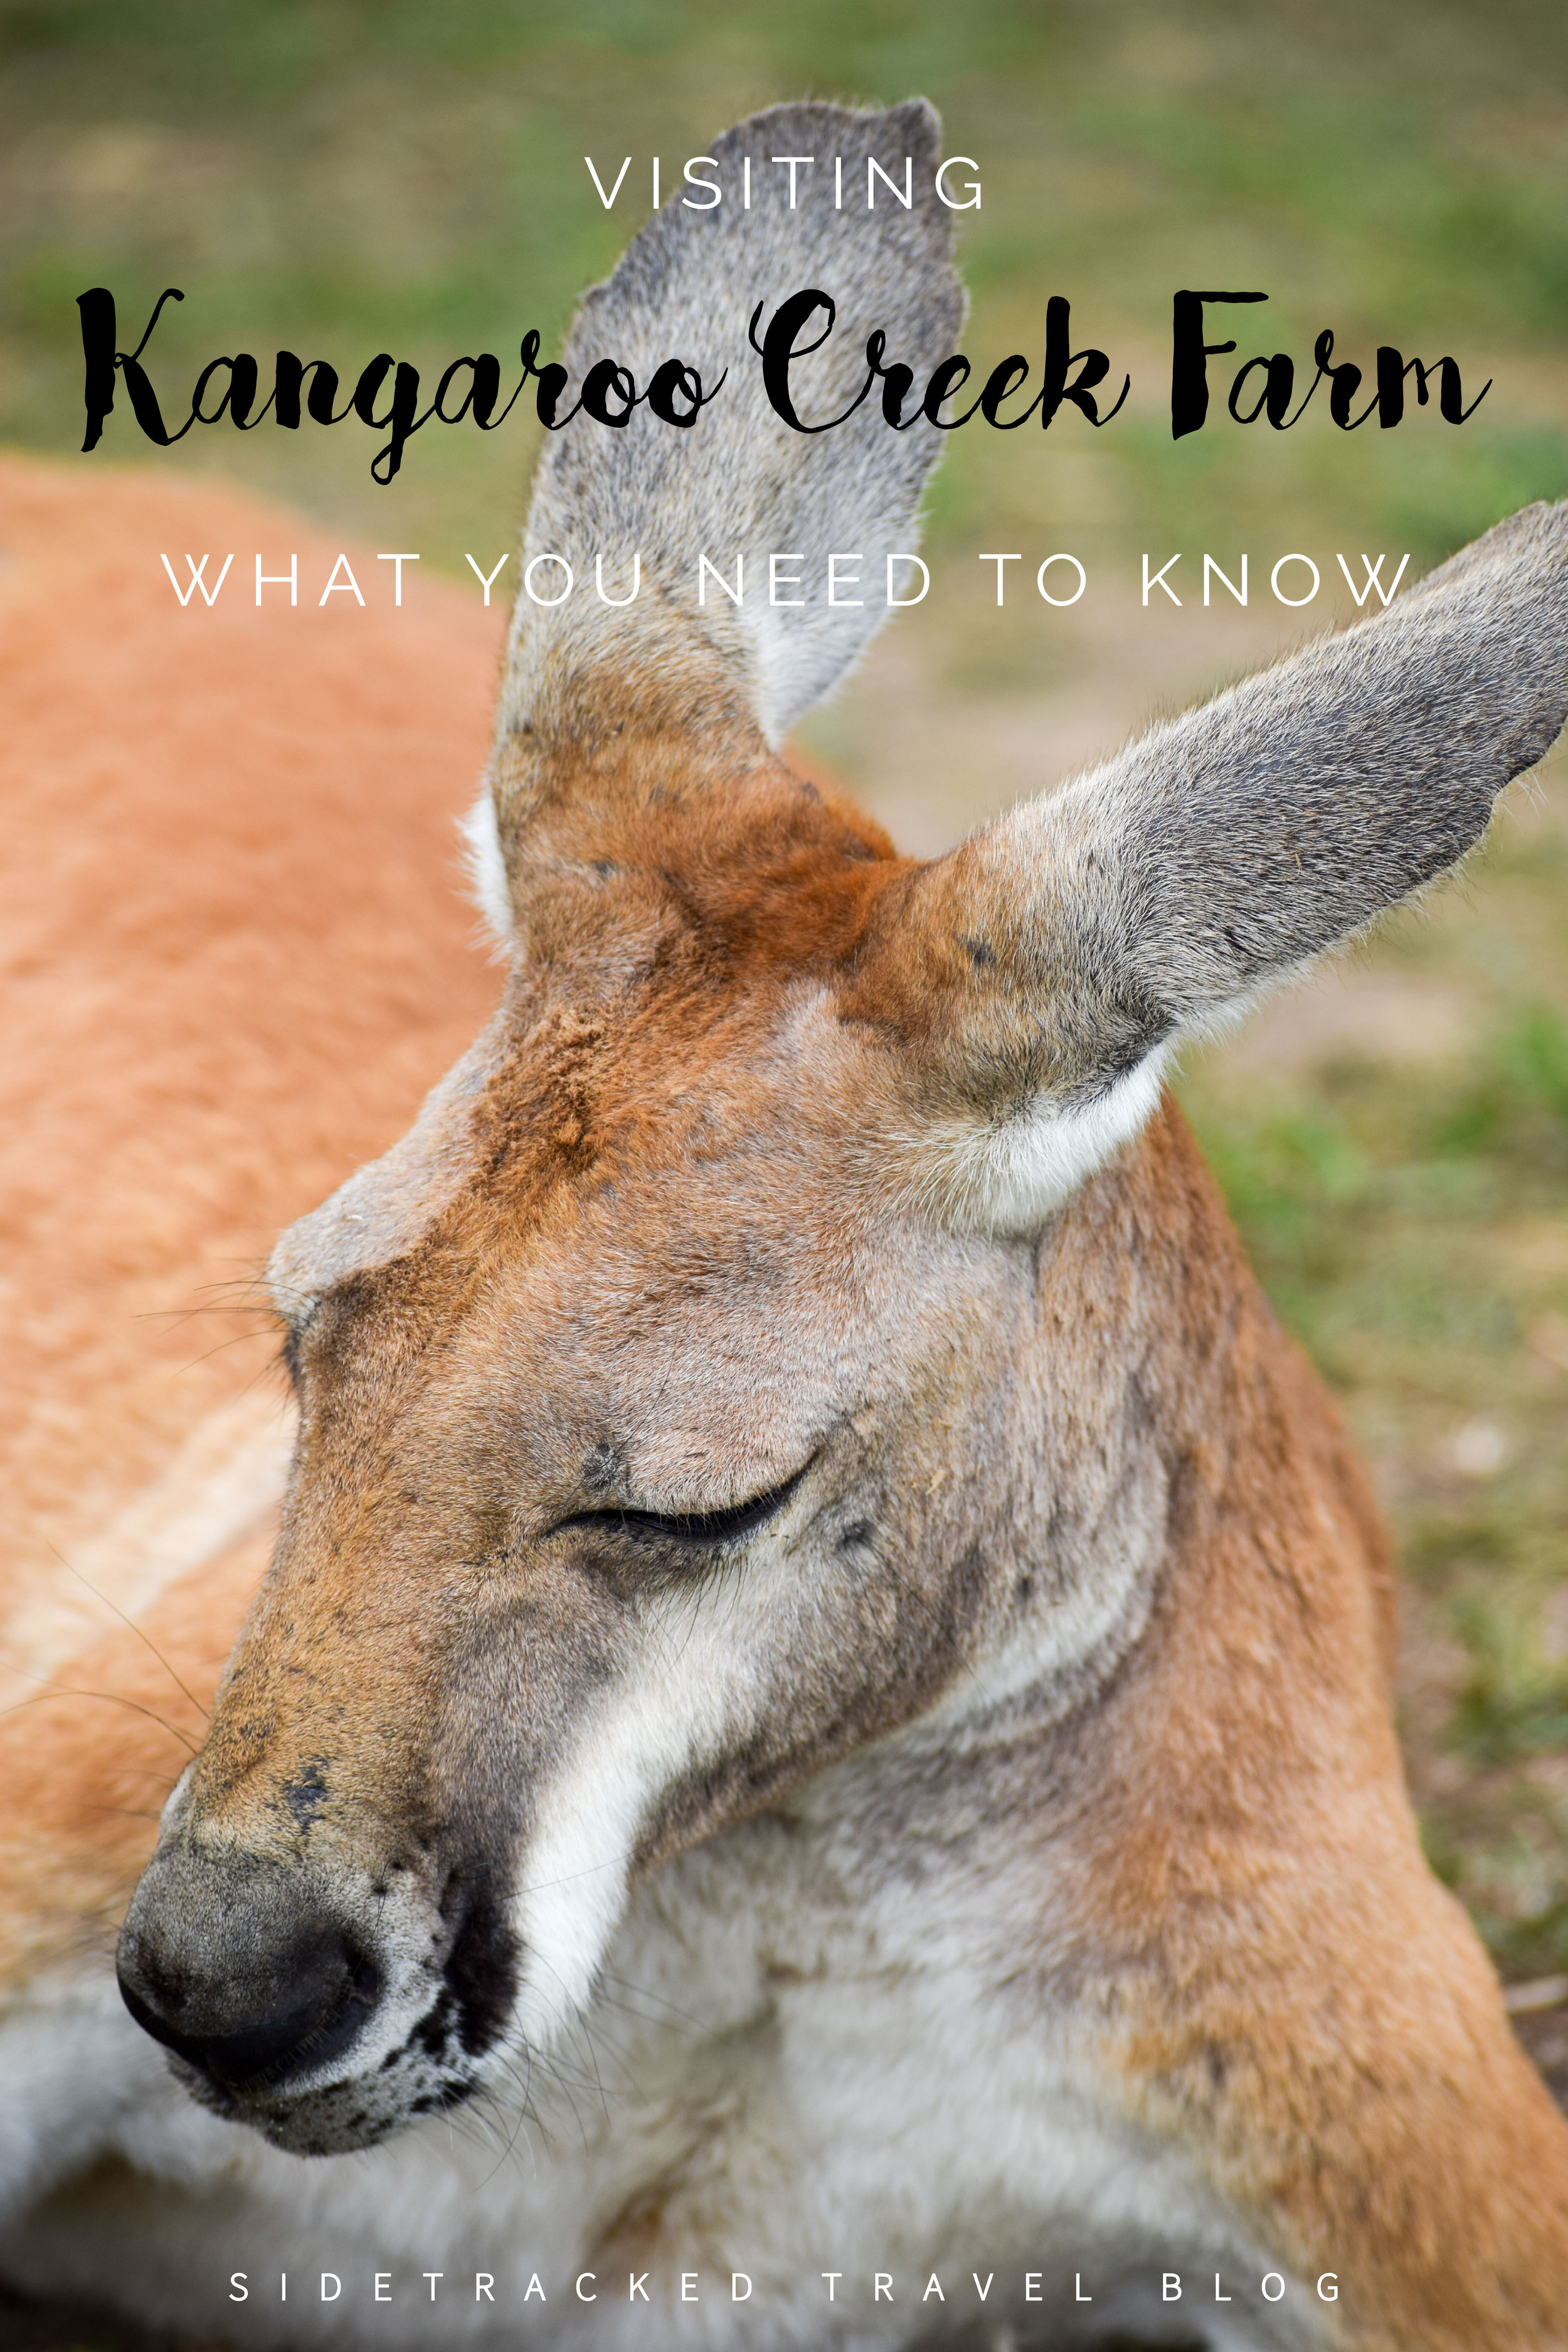 Some thoughts and important info about visiting Kangaroo Creek Farm, a popular tourist attraction in the Okanagan Valley home to kangaroos, wallabies, and capybaras.